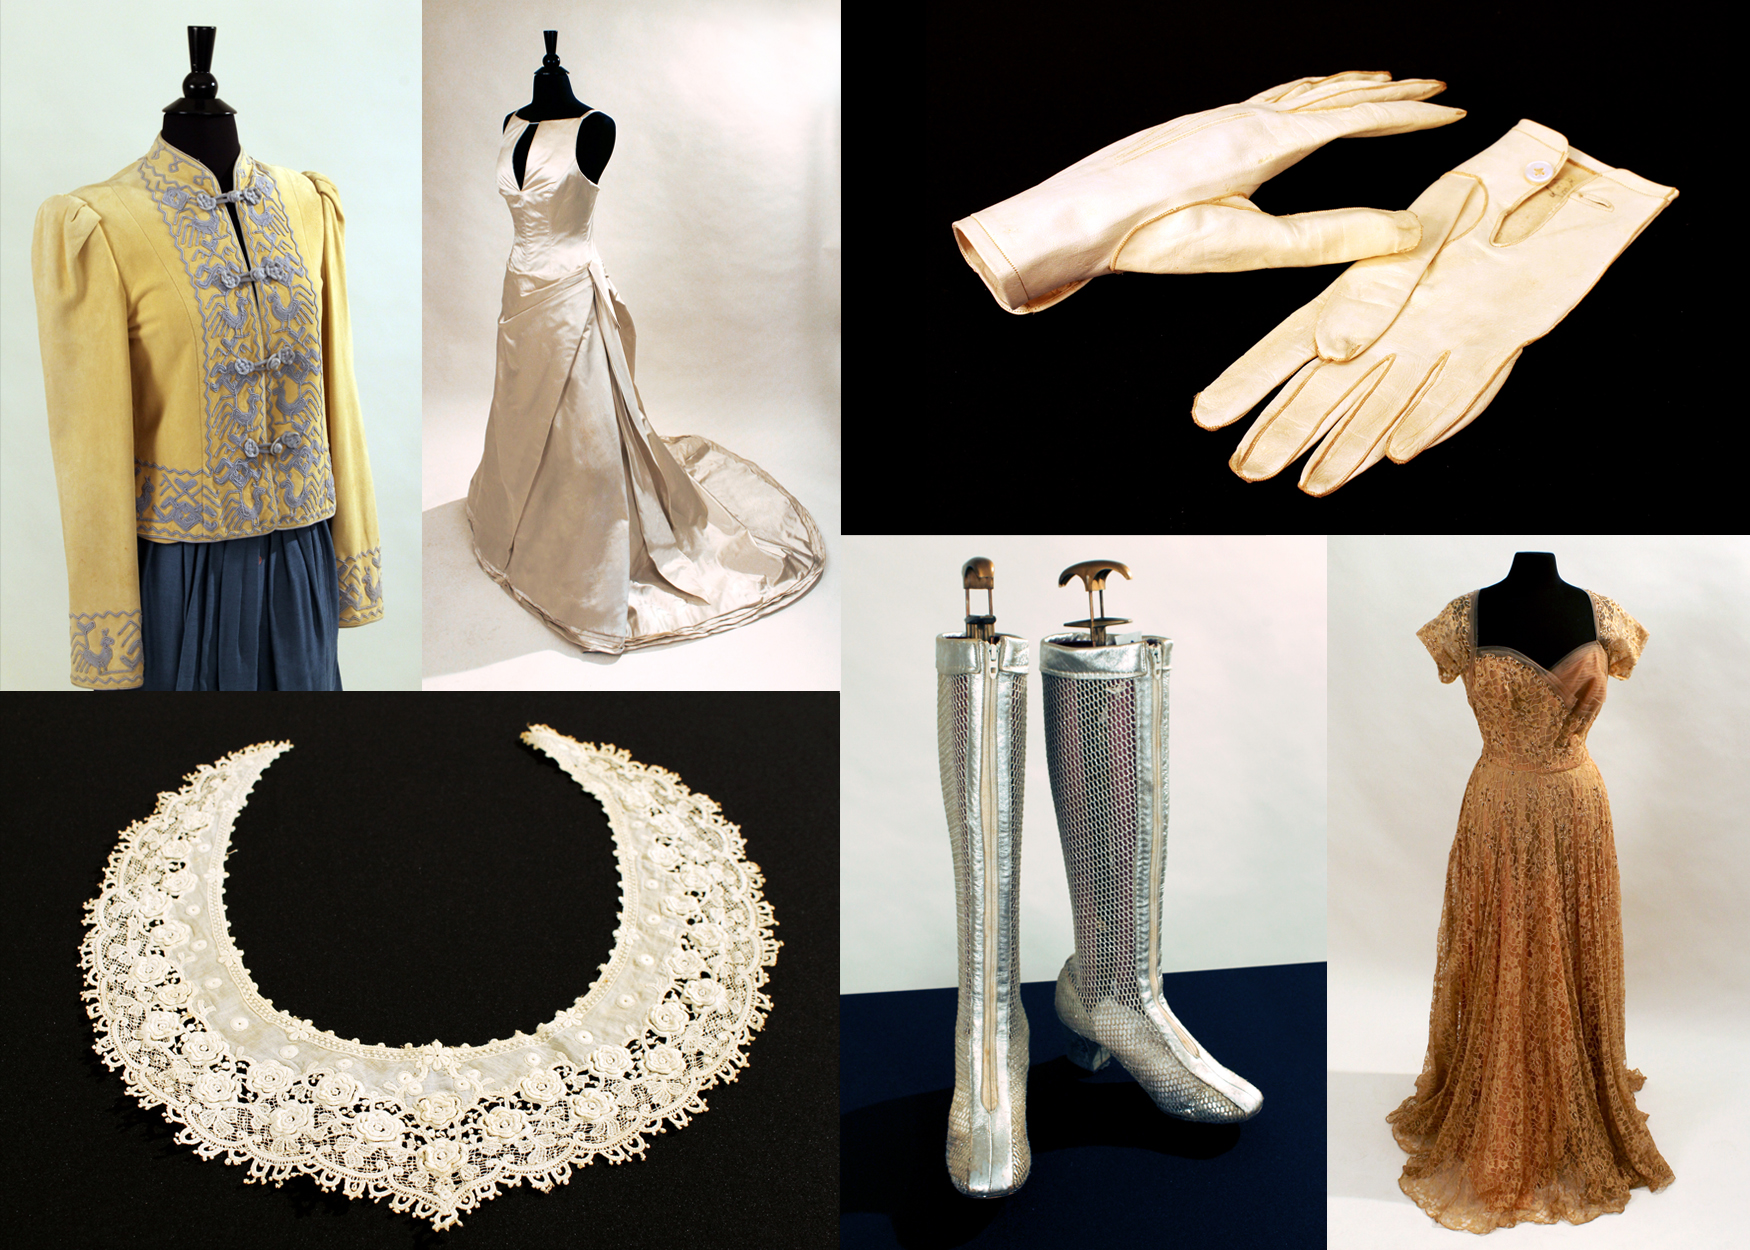 "An elaborately beaded bodice from the 1890s, lace from the early 1900s, a pair of ""space age"" boots from the 1960s, and items by luxury design labels such as Vera Wang, Chanel and Yves Saint Laurent are among the more than 26 pieces that will be available for viewing at the 'Fashion A to Z' exhibit."